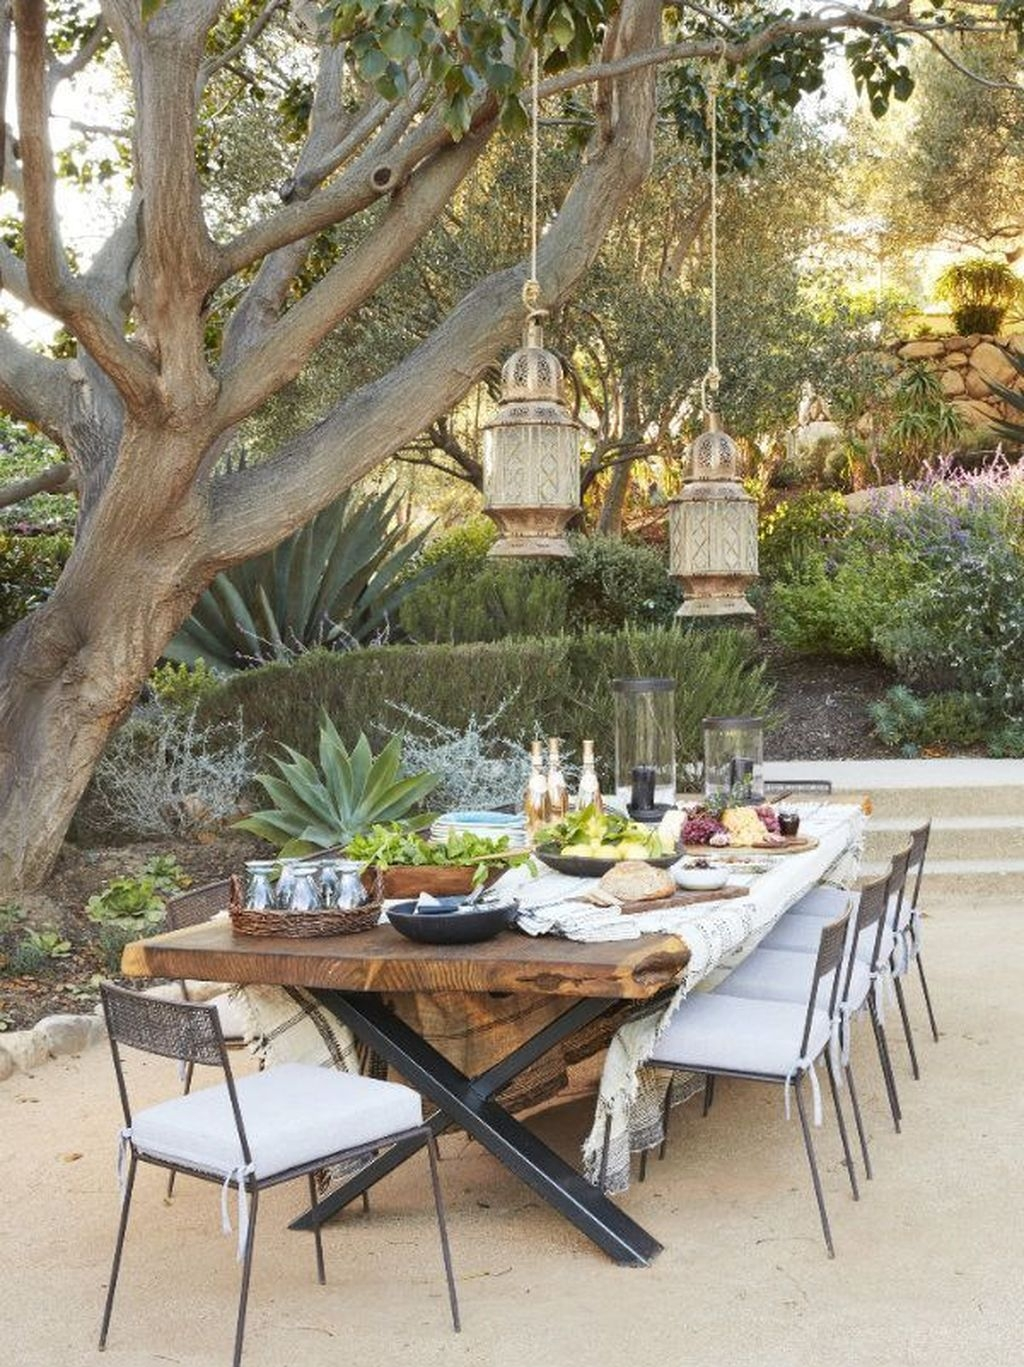 5 Ideas For the Perfect Al Fresco Dining Area Patio Design Ideas 7 Stunning Patio Design Ideas For This Summer 5 Ideas For the Perfect Al Fresco Dining Area 01 Patio Design Ideas 7 Stunning Patio Design Ideas For This Summer 5 Ideas For the Perfect Al Fresco Dining Area 01